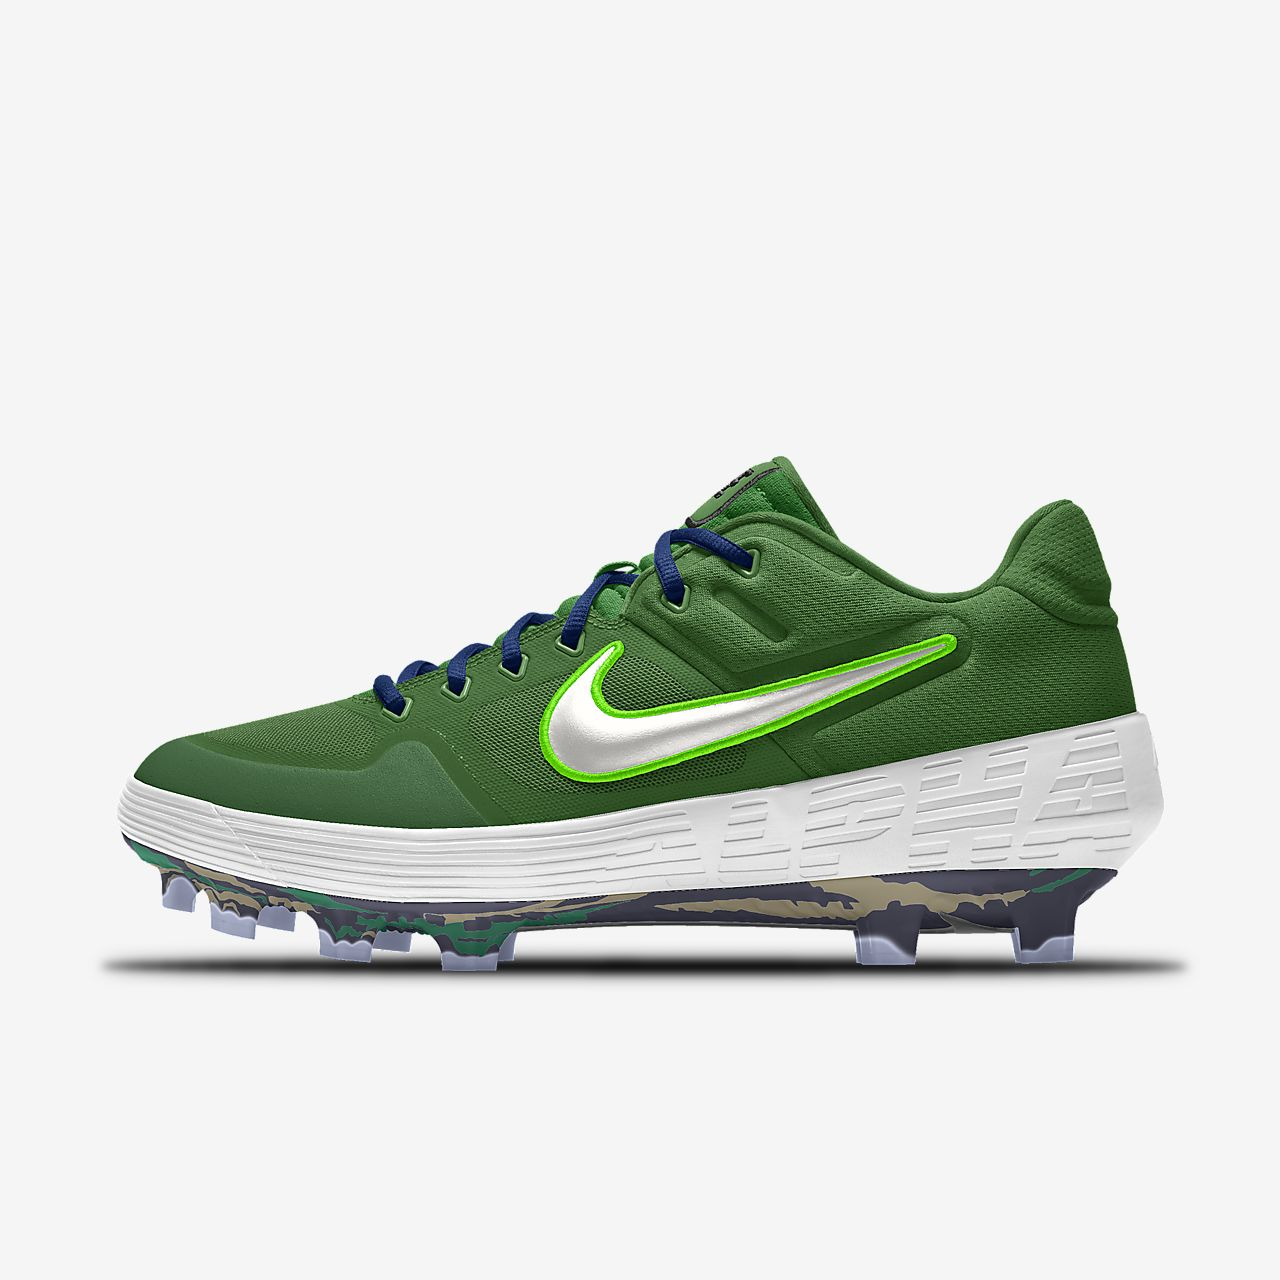 Nike Alpha Huarache Elite 2 Low MCS Premium By You Custom Baseball Cleat